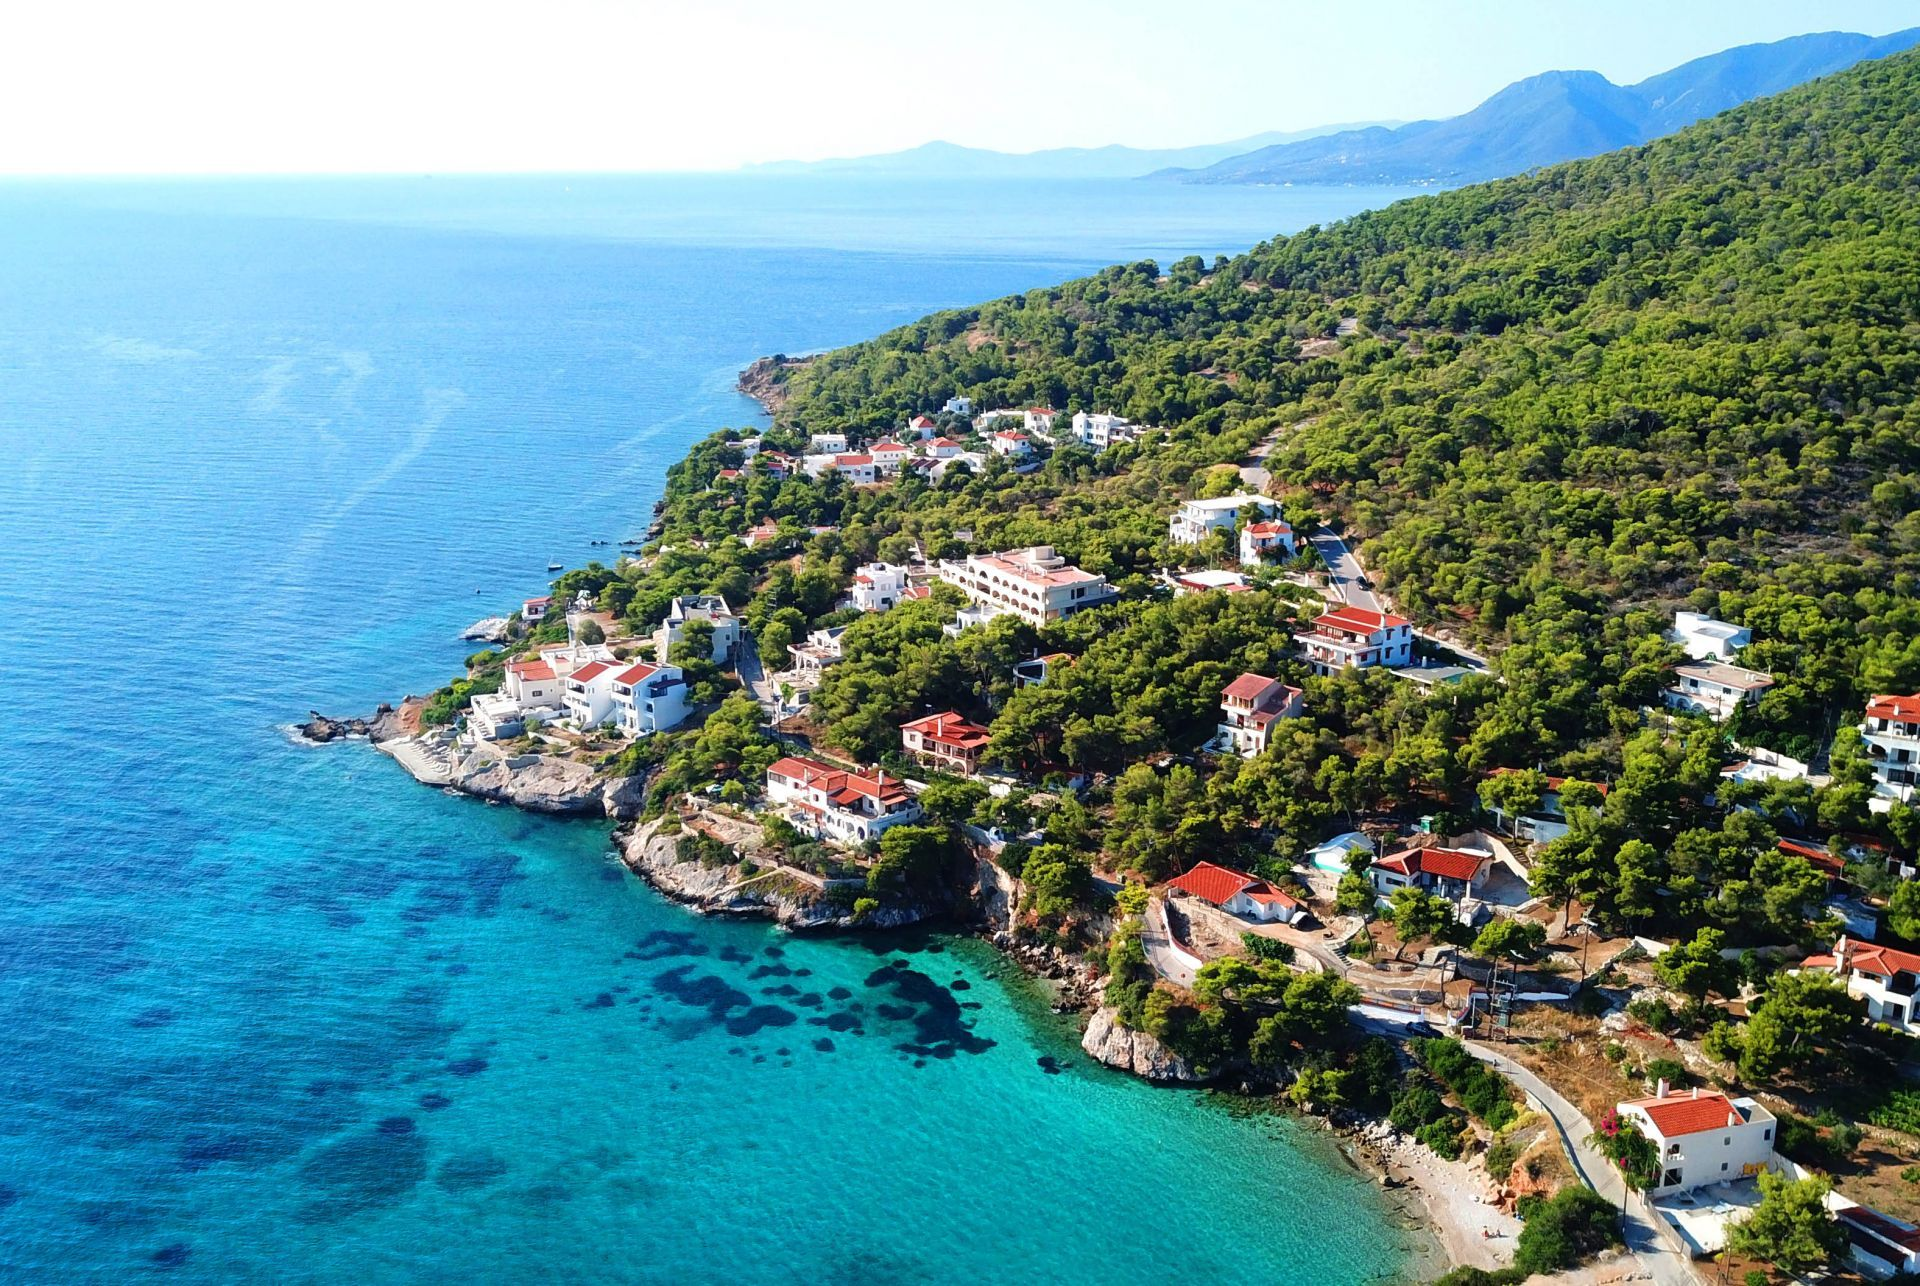 Accommodation and hotels in Agistri